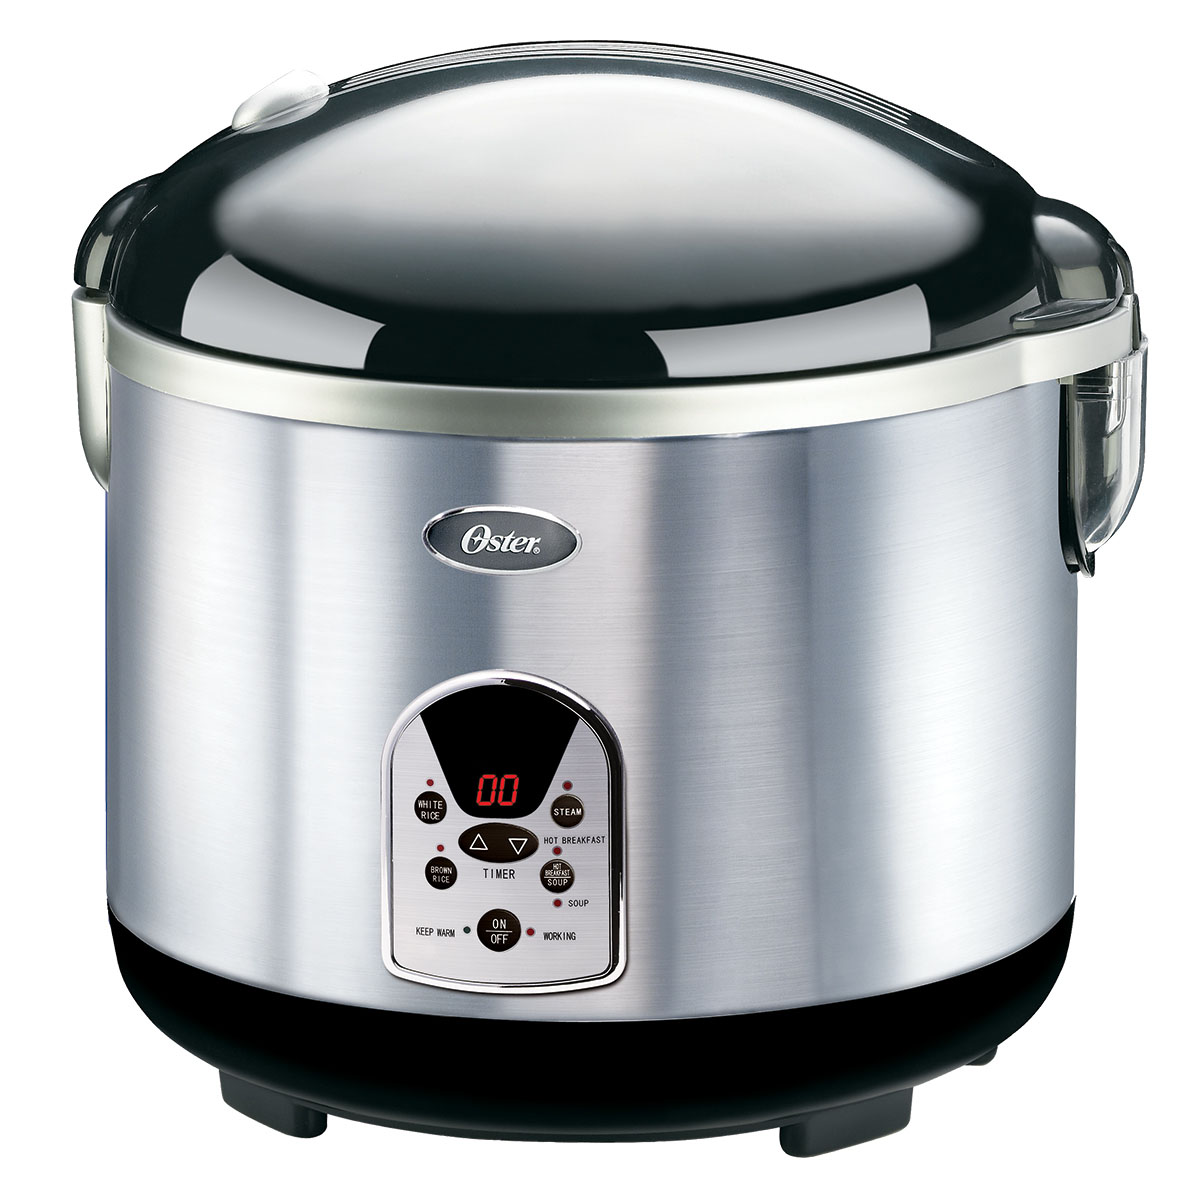 Oster 003071-000-000 20-Cup Digital Rice Cooker